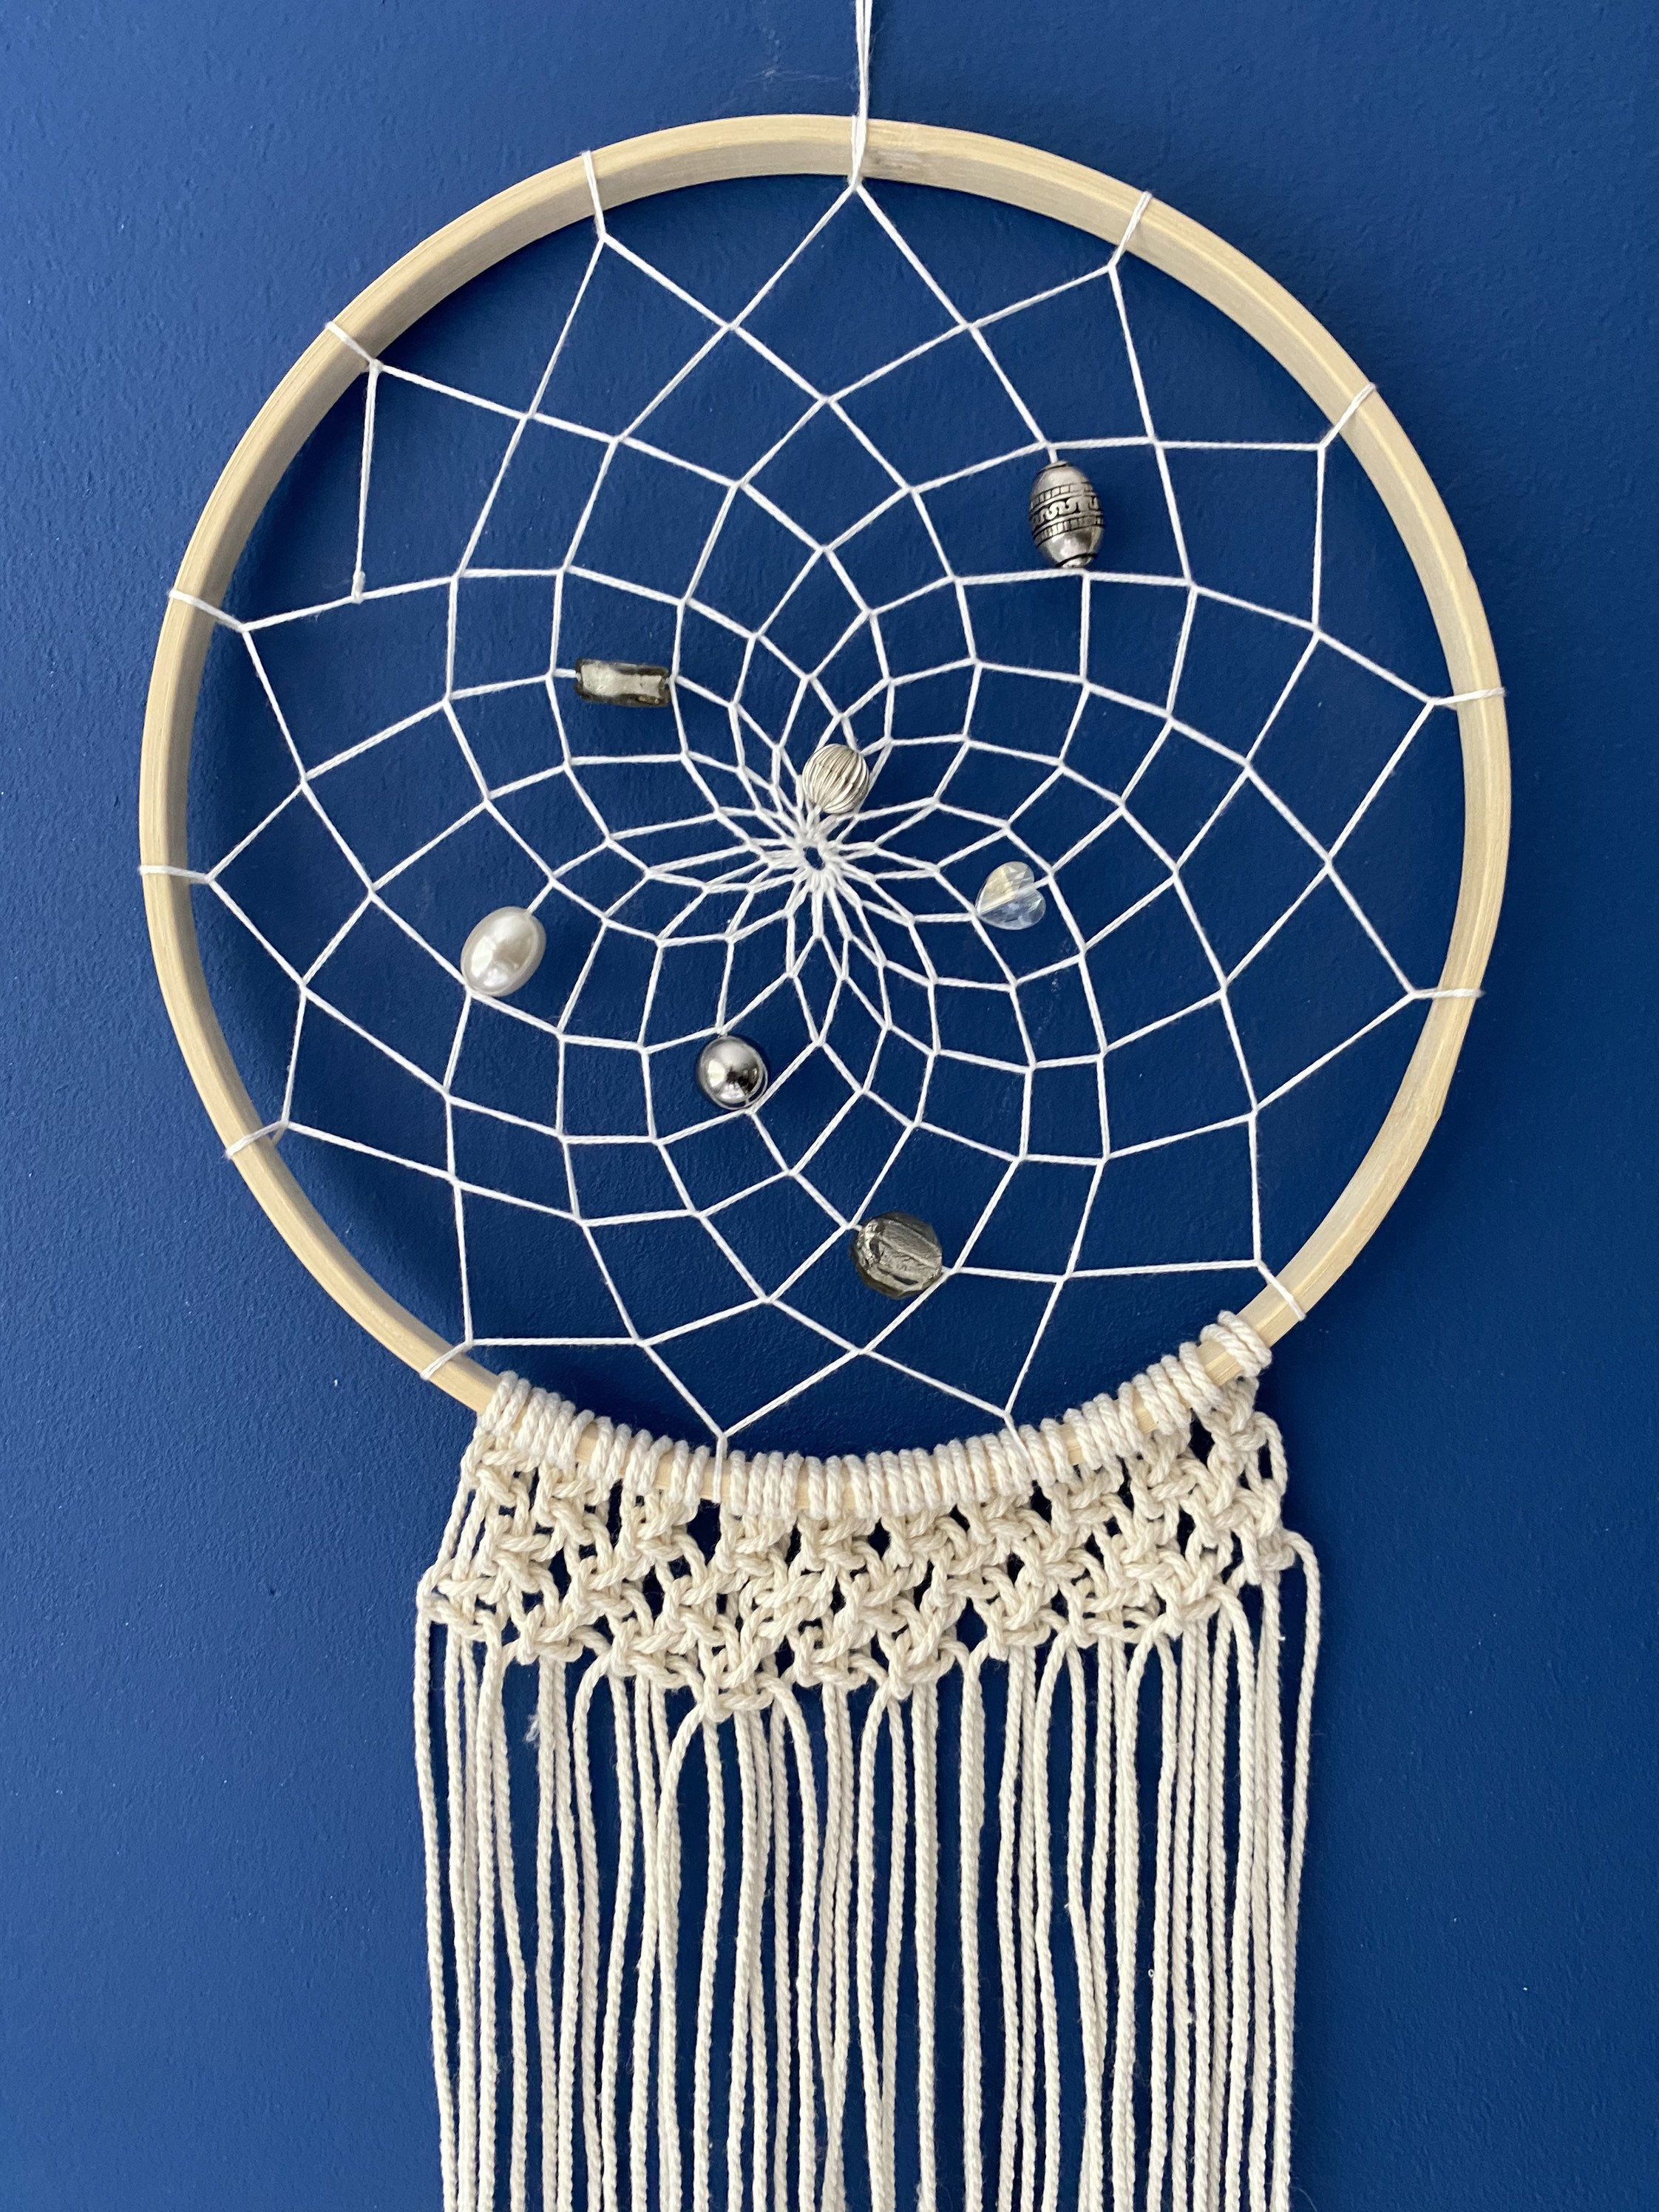 Classic Boho Dream Catcher Wall Hanging Decor with beads and macrame #tapestries #crochetmandalawall #bohodecoration #bohemianeclectic